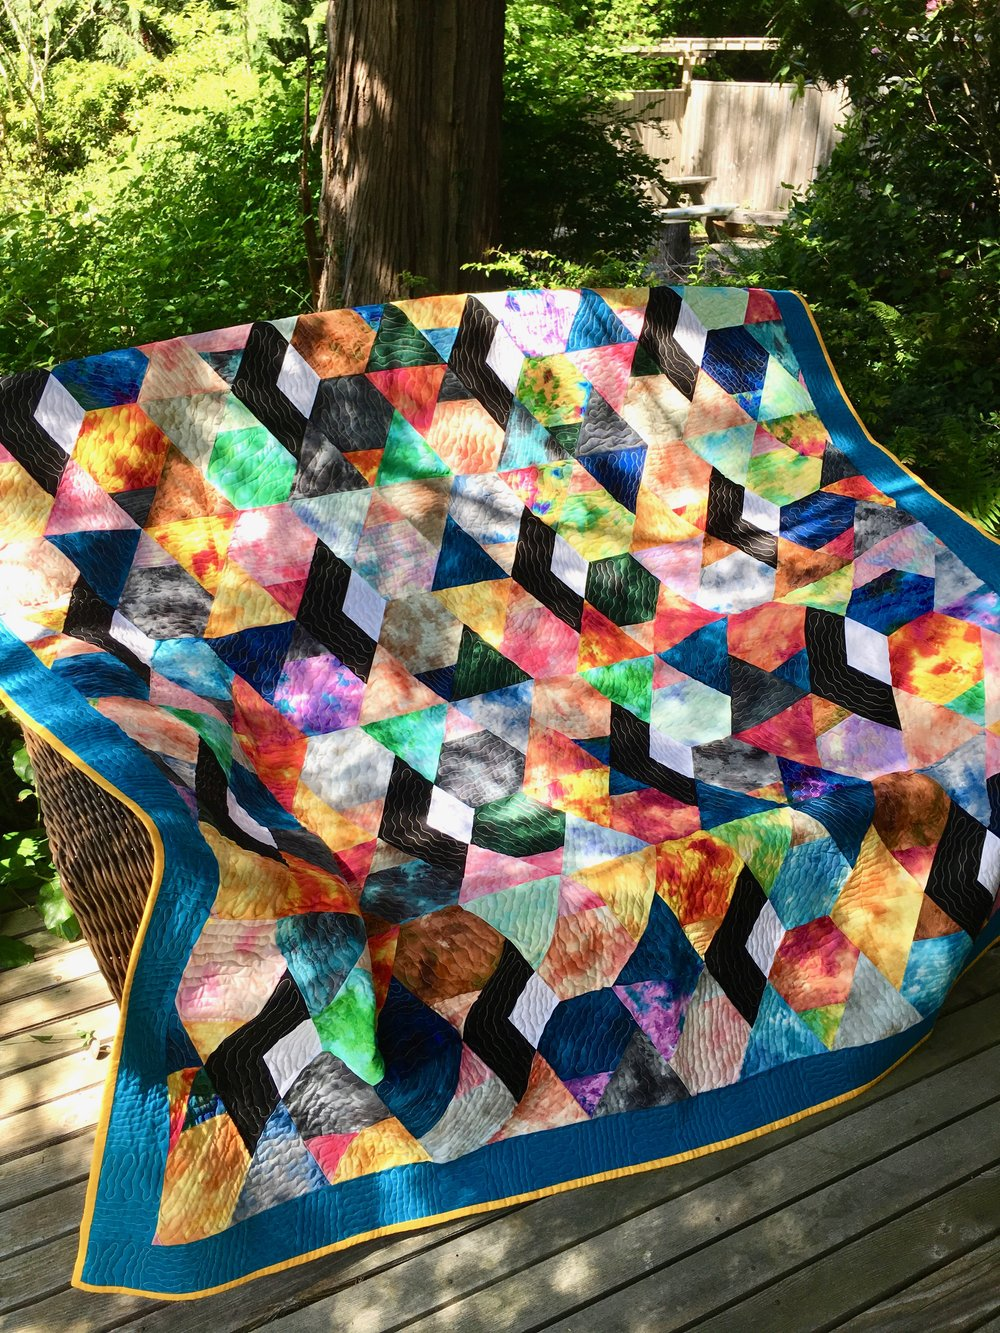 Sunny Splash Stained Glass Quilt designed, created, & quilted by Emily Breclaw